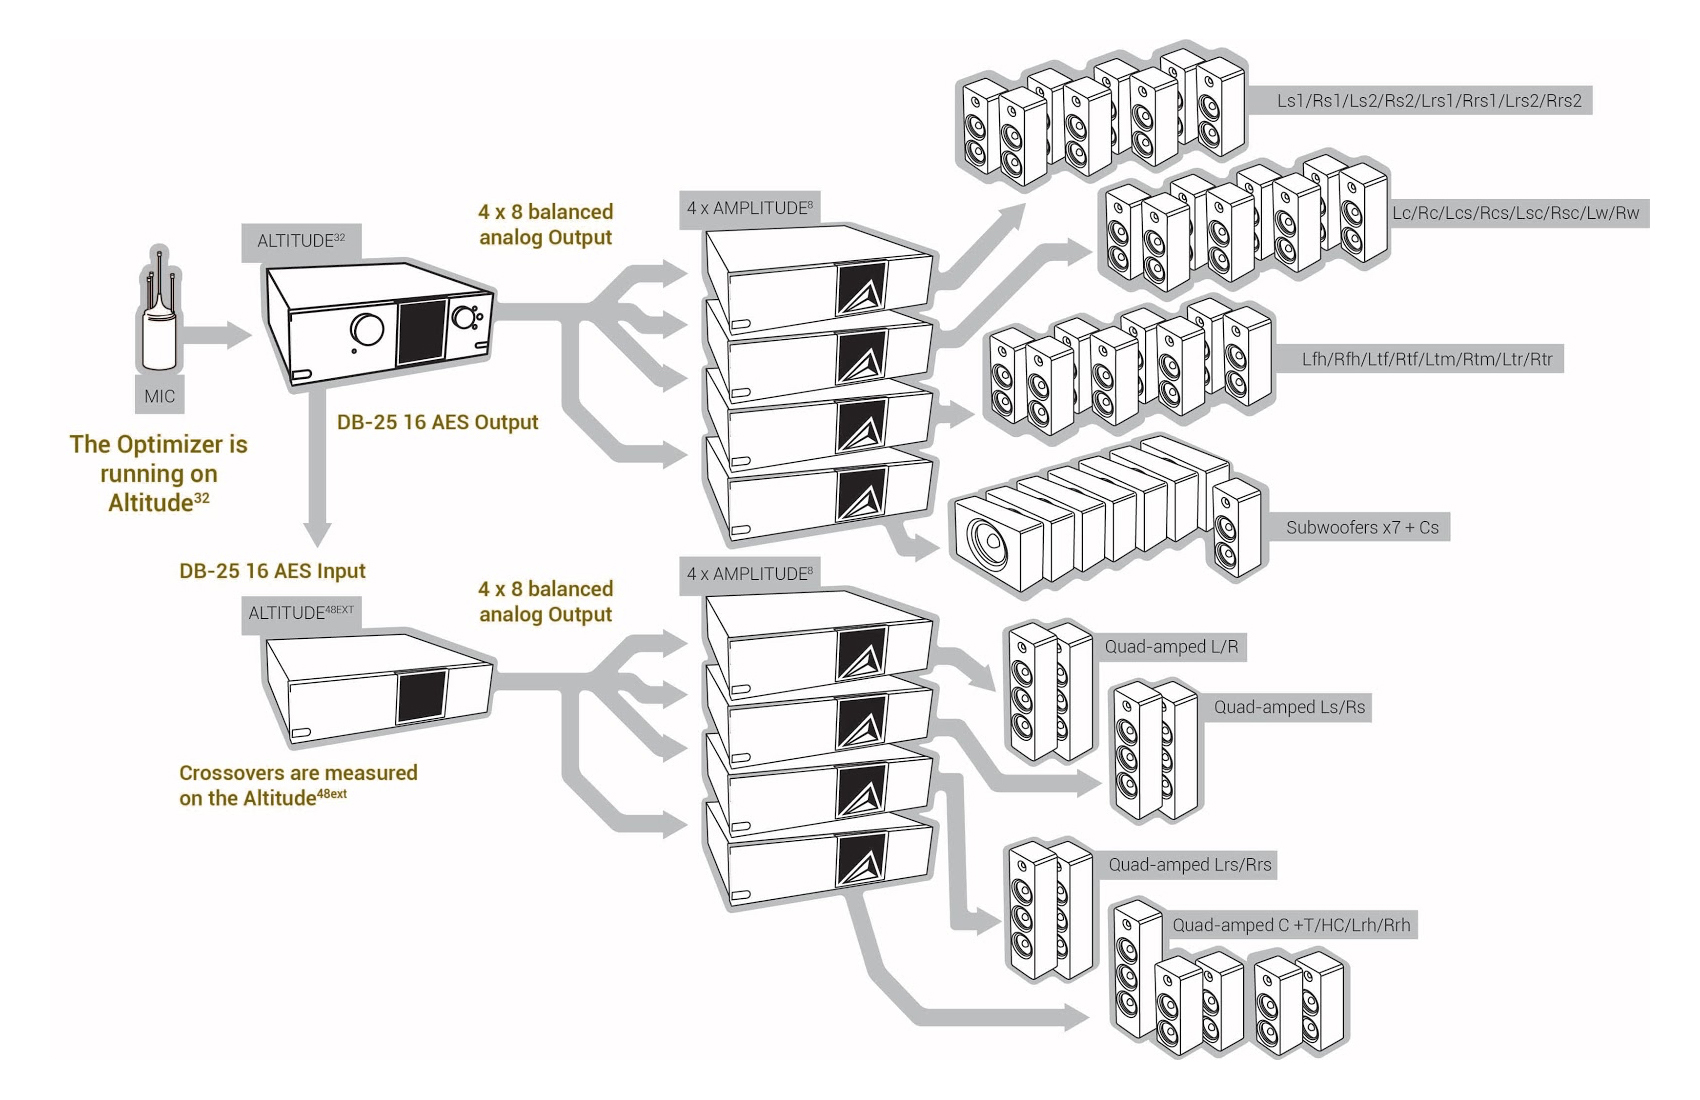 Trinnov enables up to 64 channels